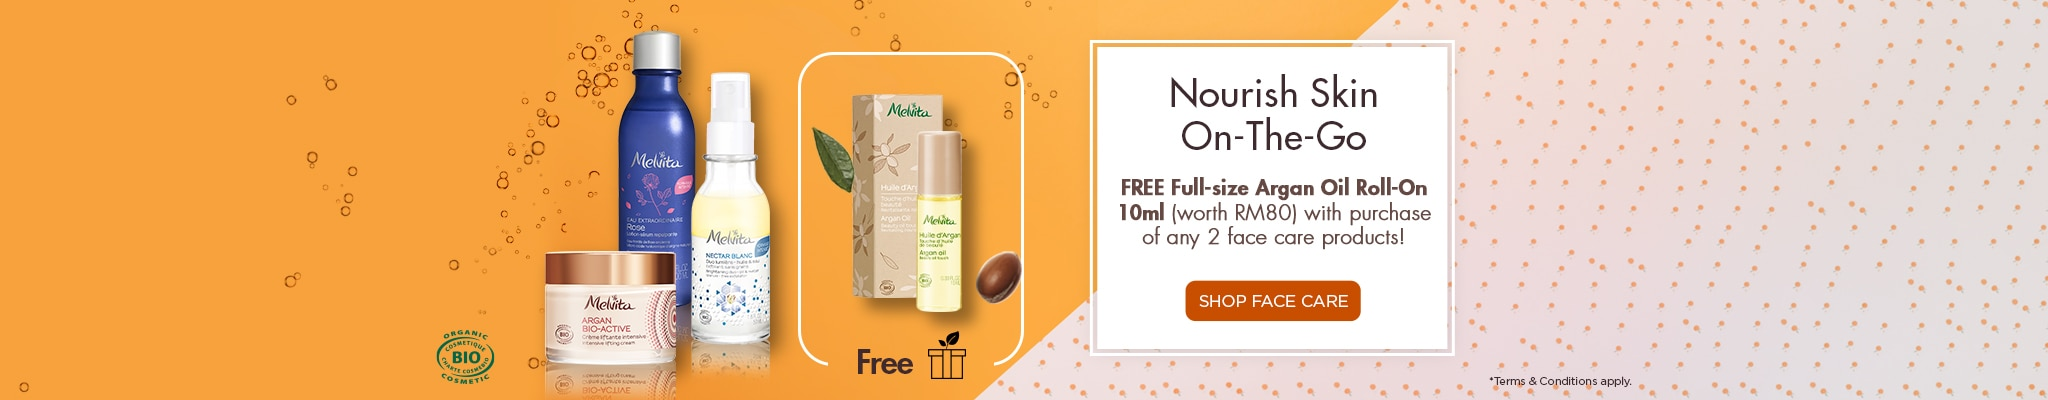 Buy 2 face care free Argan Oil Roll-On